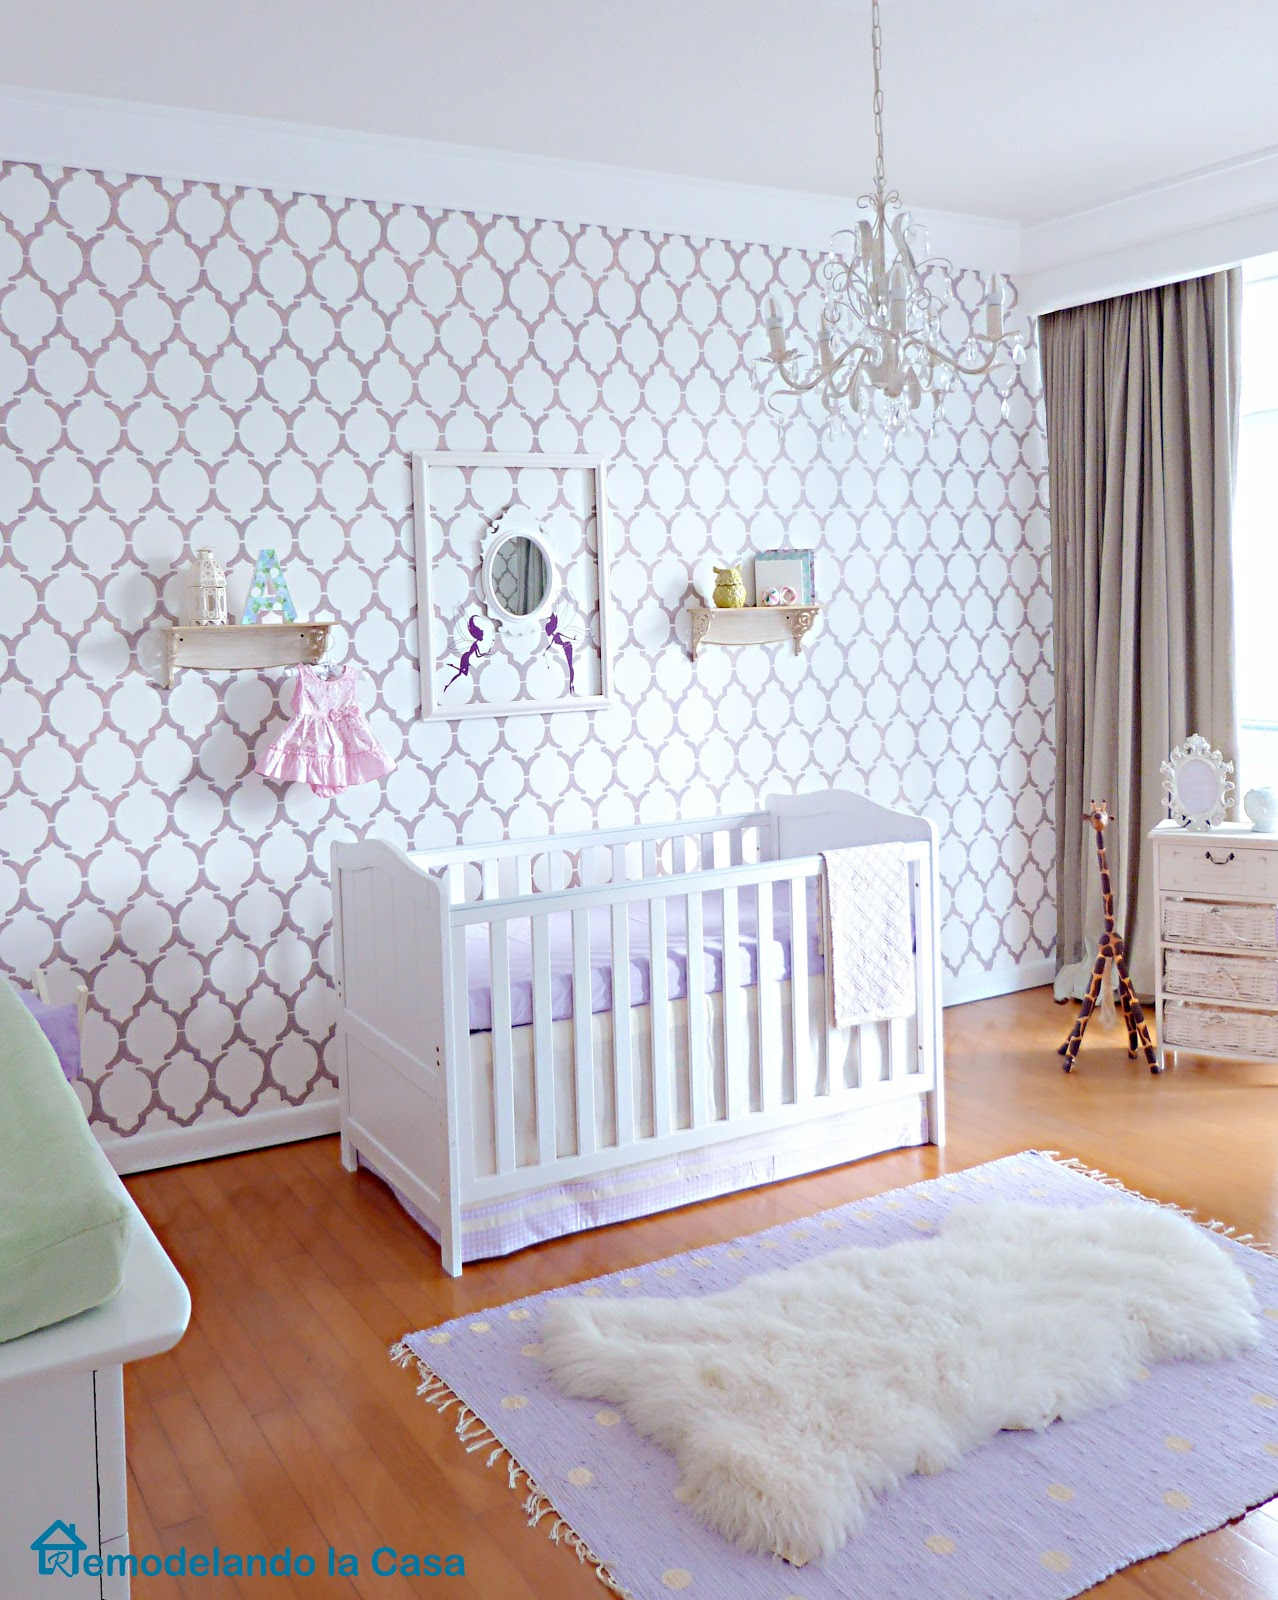 Antonia 39 s stylish nursery remodelando la casa for Tapisserie chambre bebe fille